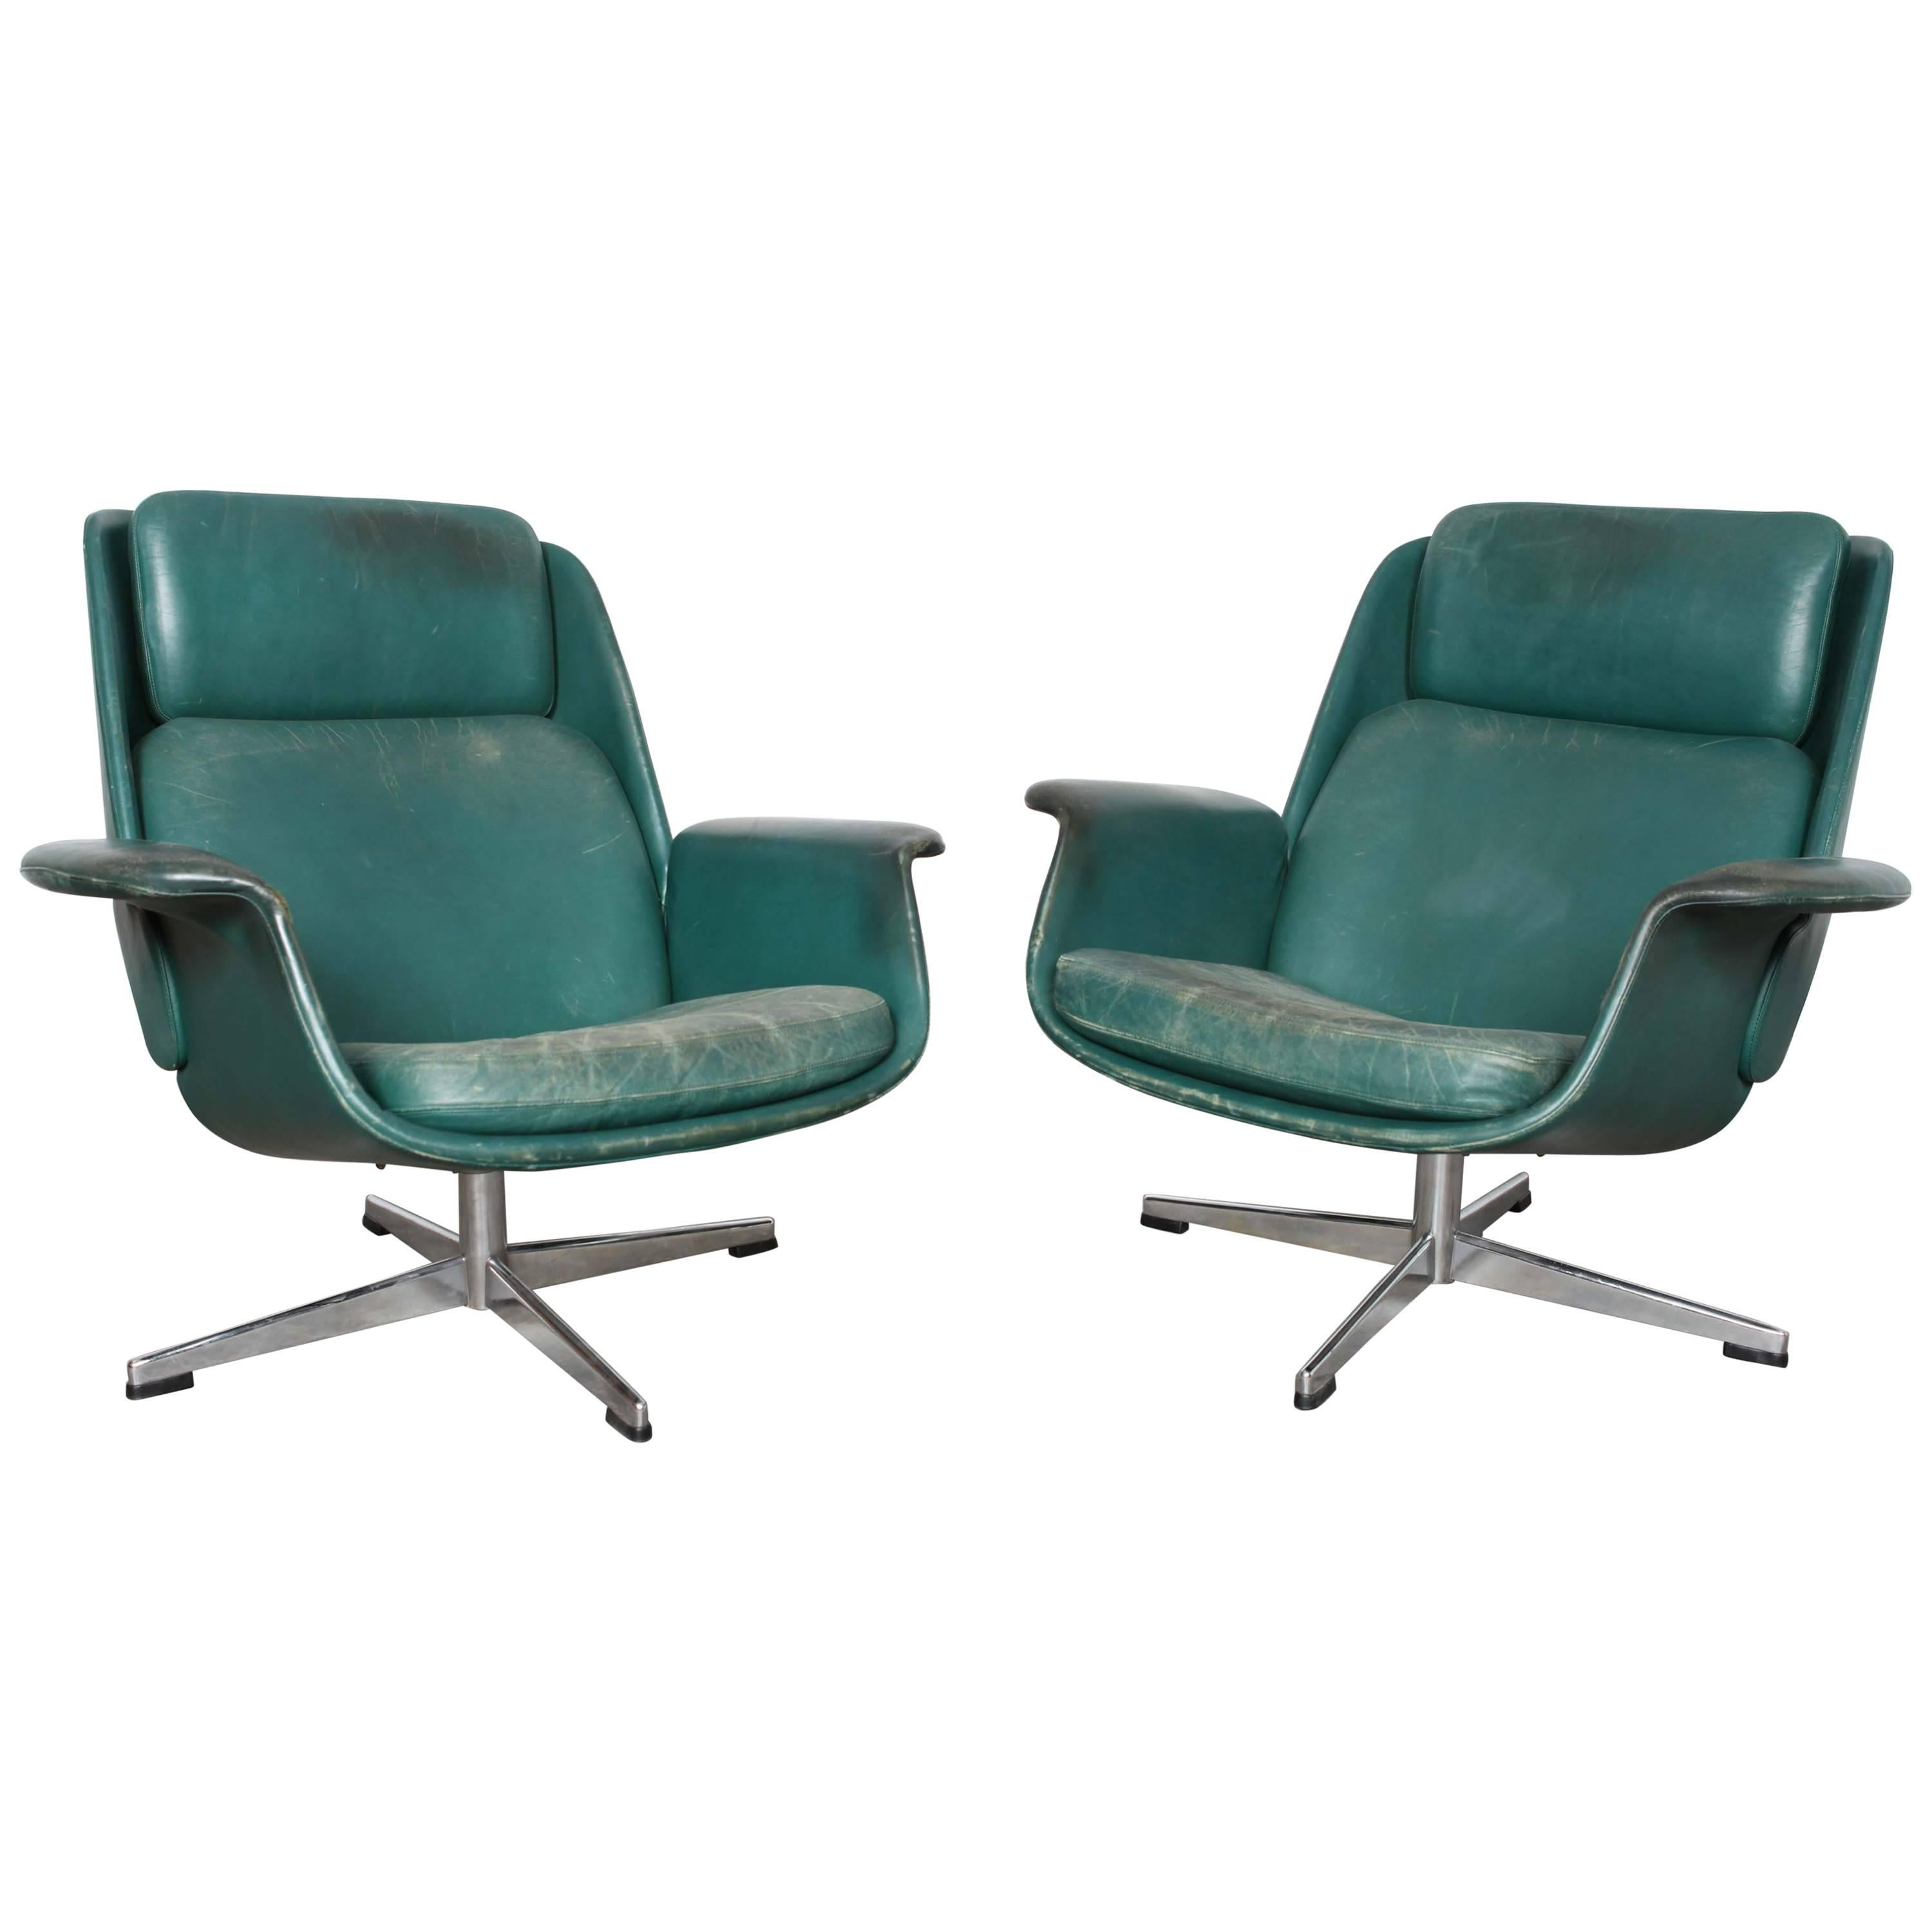 Danish Midcentury Green Leather Swivel Lounge Chairs For Sale